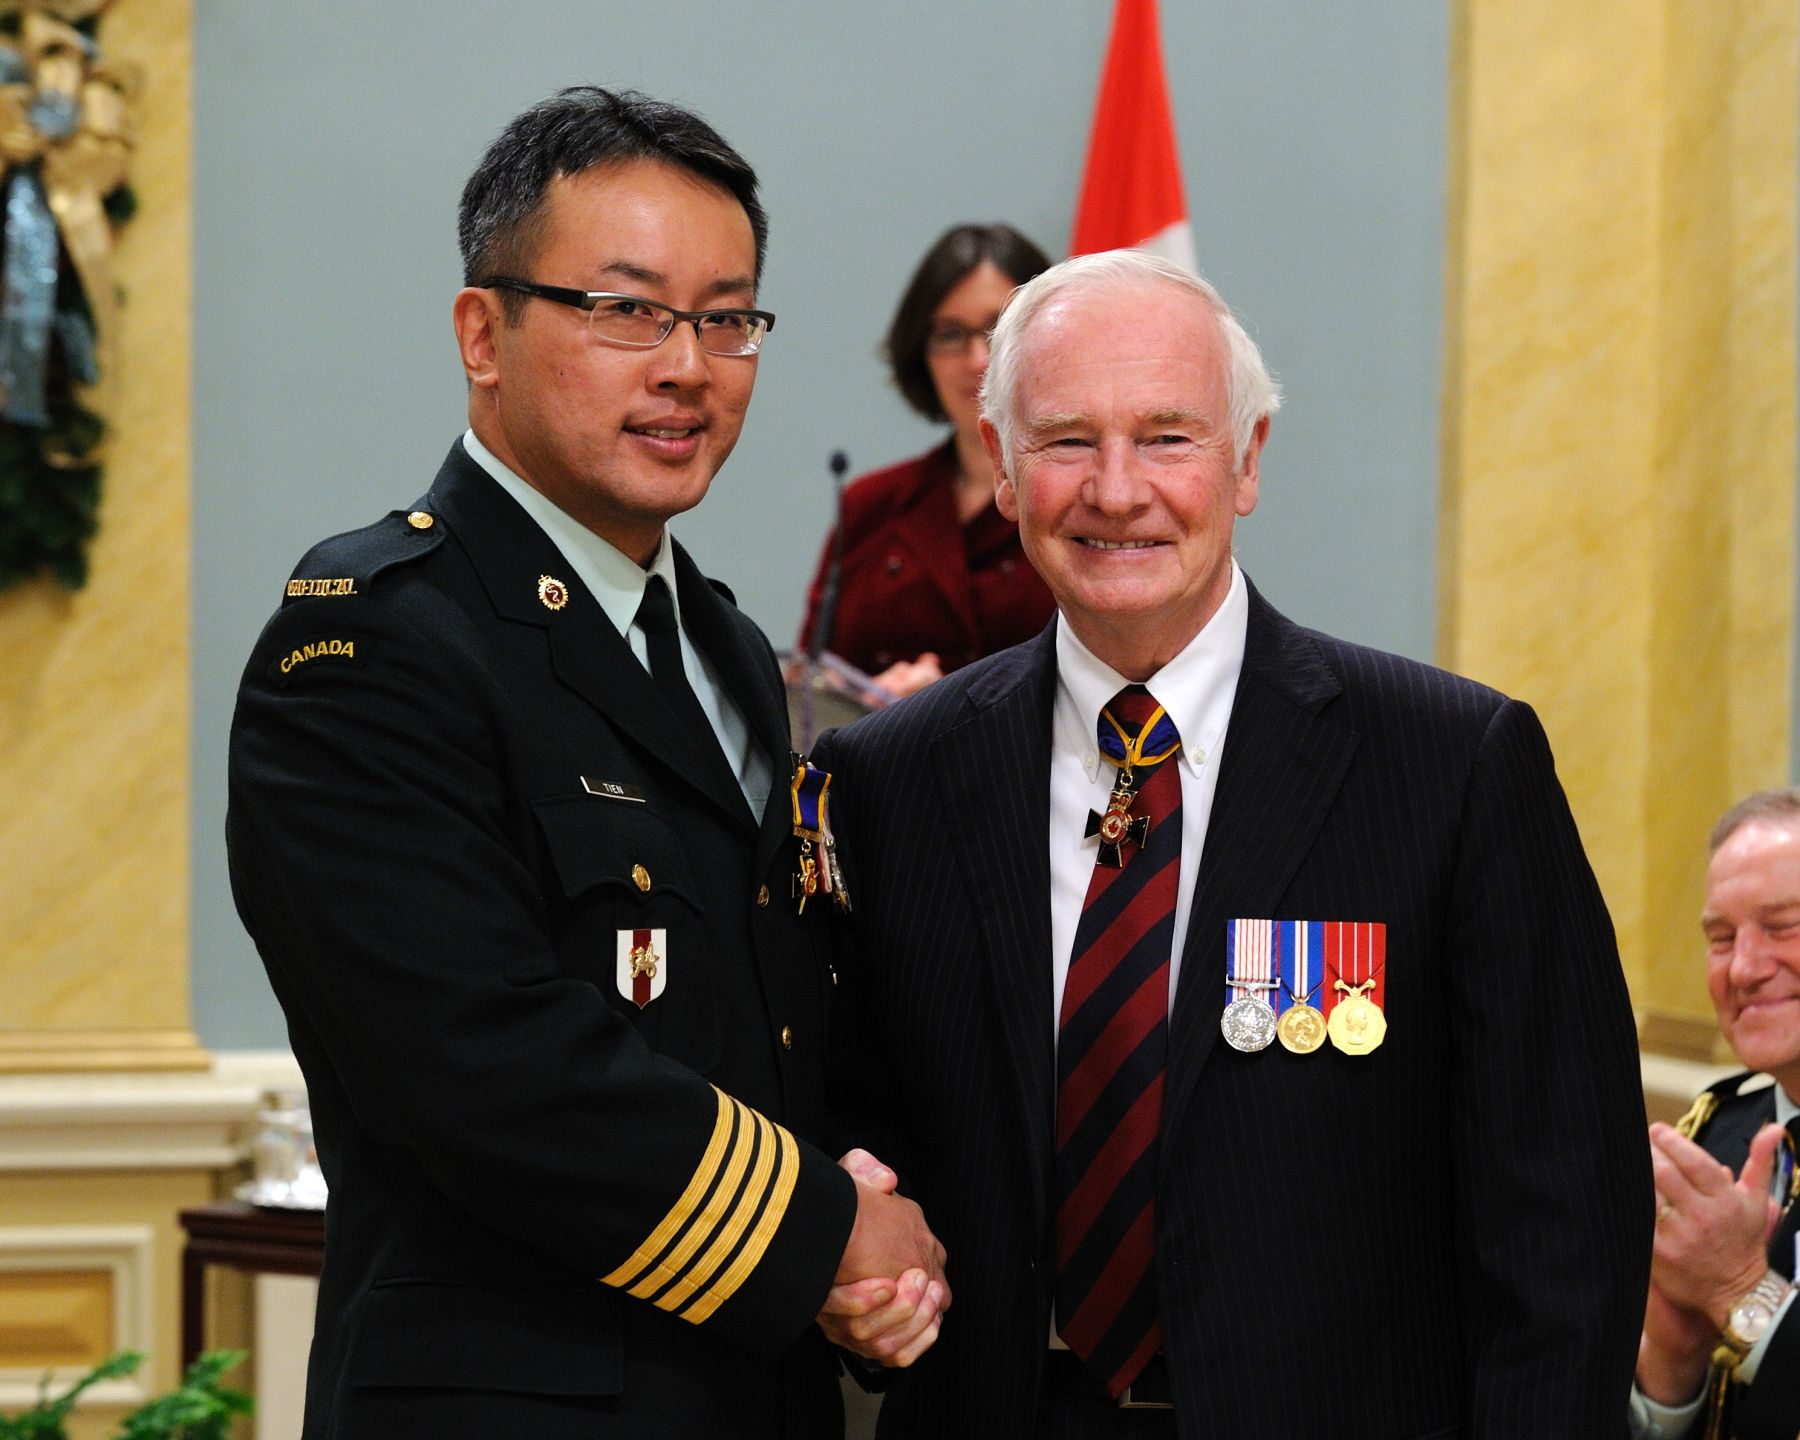 His Excellency presented the Order of Military Merit at the Officer level (O.M.M.) to Lieutenant-Colonel Homer Tien, O.M.M., C.D., 1 Canadian Field Hospital, Petawawa, Ontario.